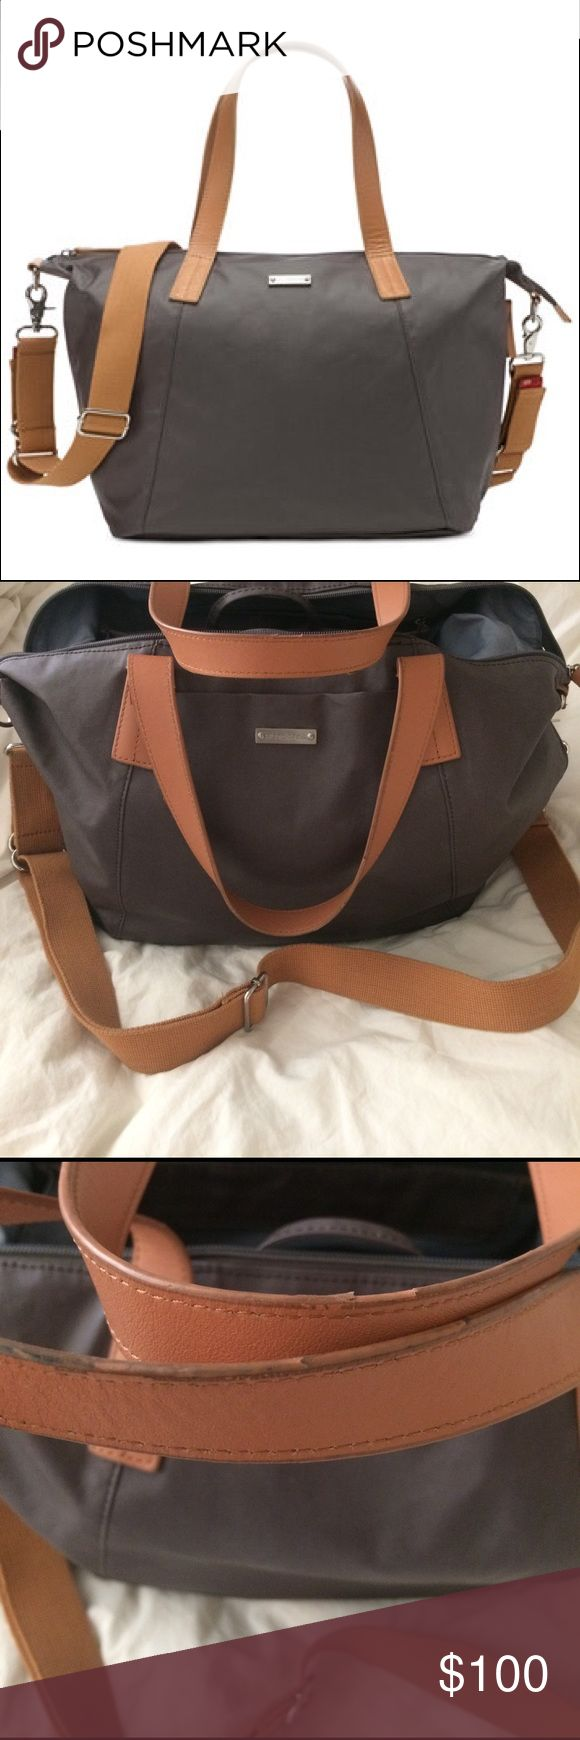 Storksak diaper bag Storksak diaper bag.  Includes mini organizer bag. Thermo insulates side pocket to keep liquids cool/warm.  Used for about 8 months.  Good condition.  Handles show some wear.  See photos for details. Storksak Bags Baby Bags